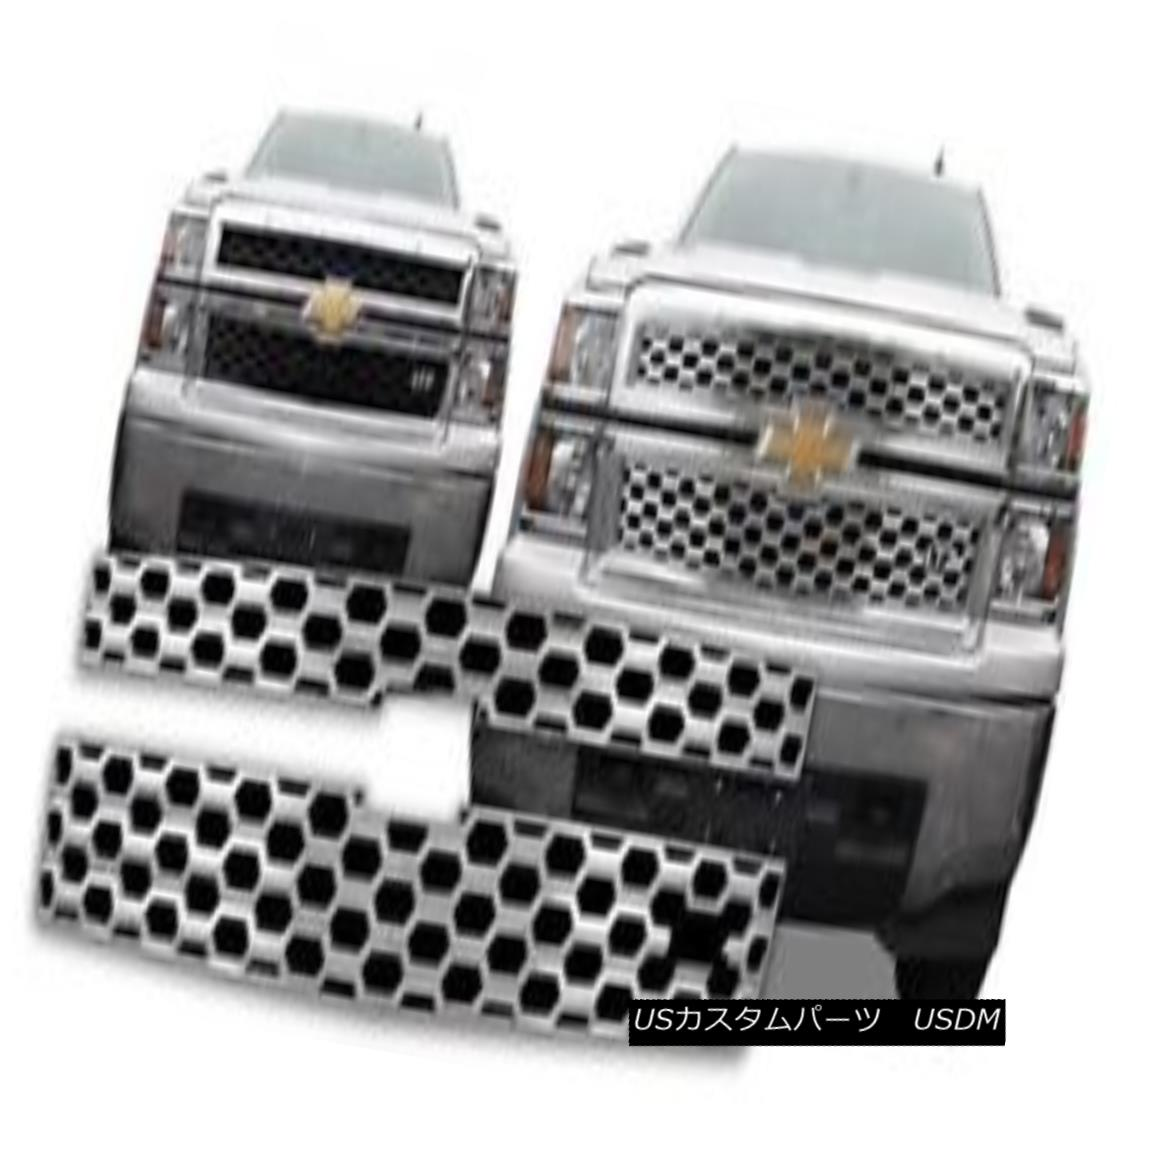 グリル Fits 14-15 Chevy Silverado 1500 LTZ ONLY-Chrome Grille Overlay GI124L 14-15インチChevy Silverado 1500 LTZ ONLY-ChromeグリルオーバーレイGI124Lに適合